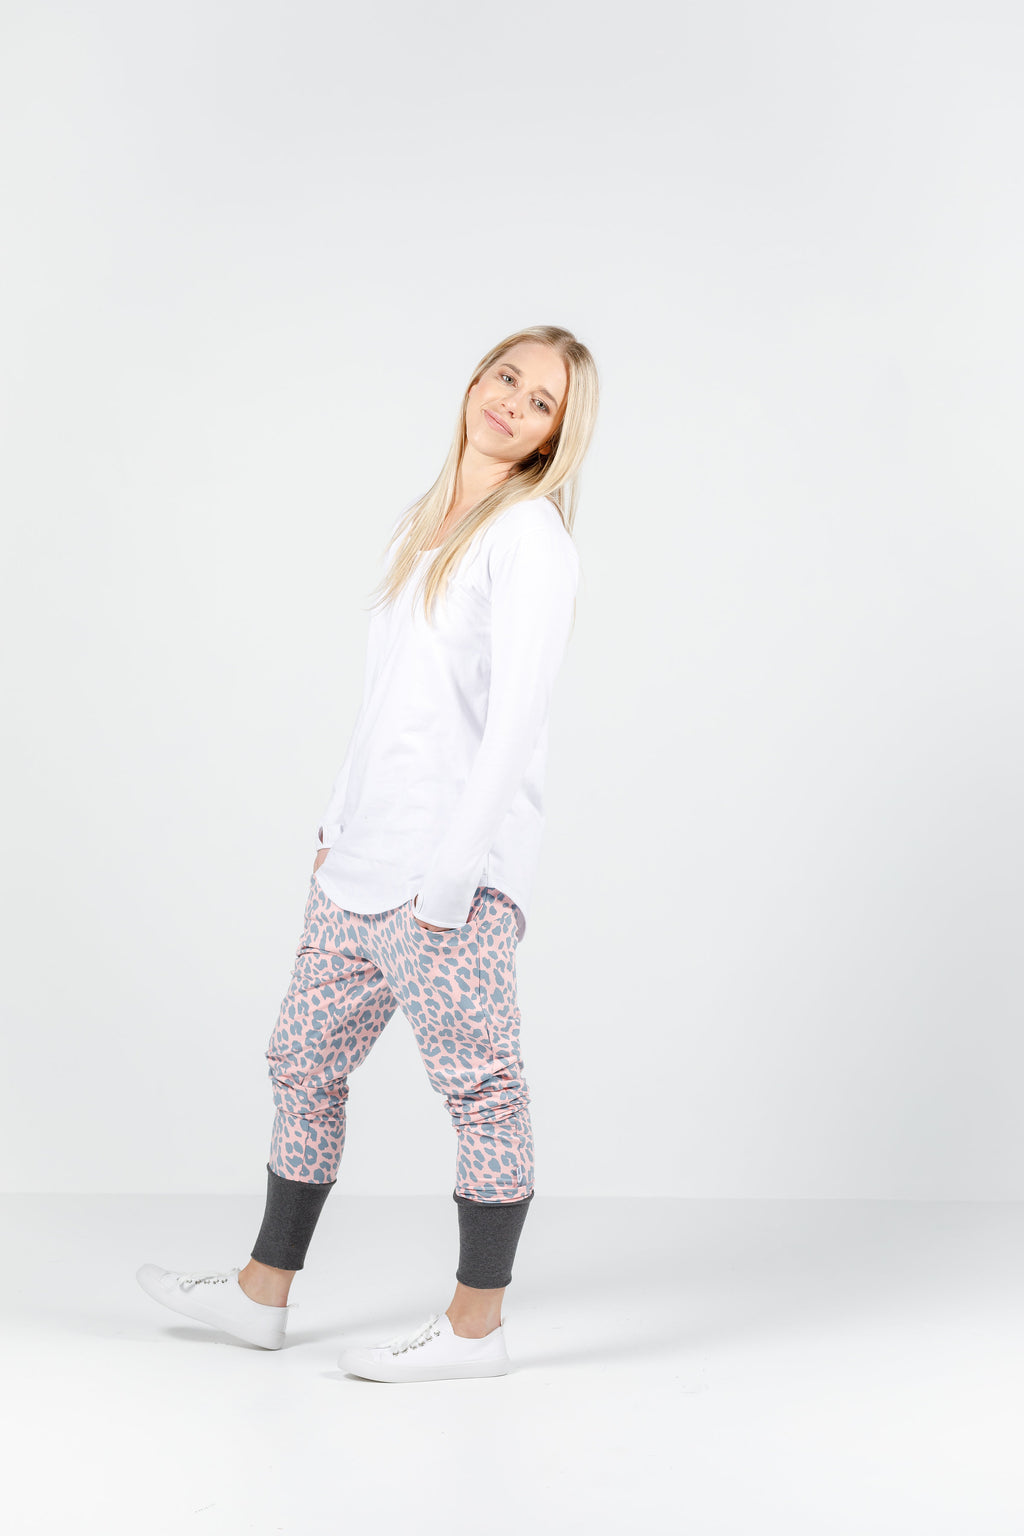 APARTMENT PANTS - WINTER - Pink/Grey Leopard print